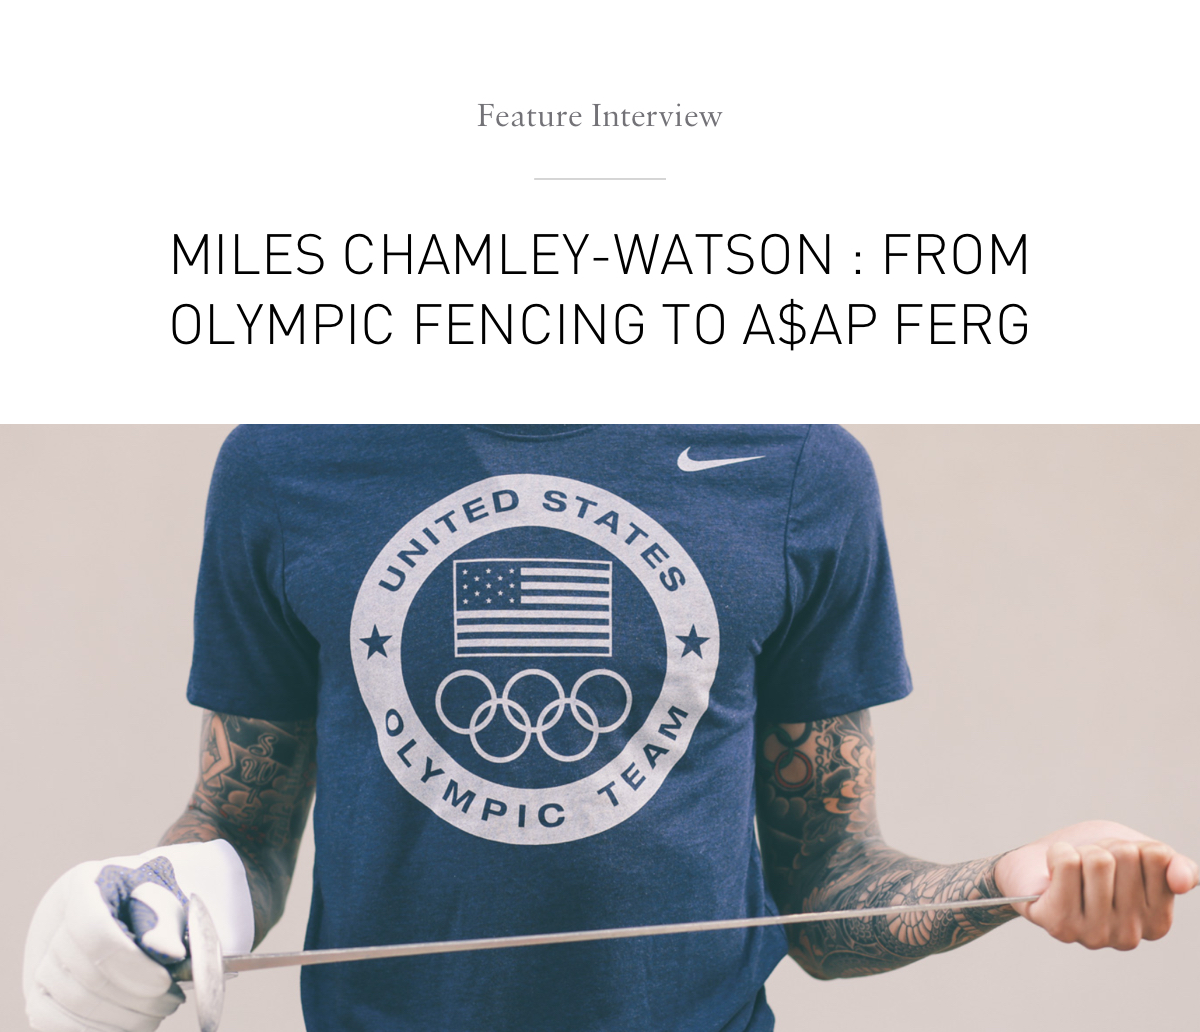 From Olympic Fencing to A$AP FERG